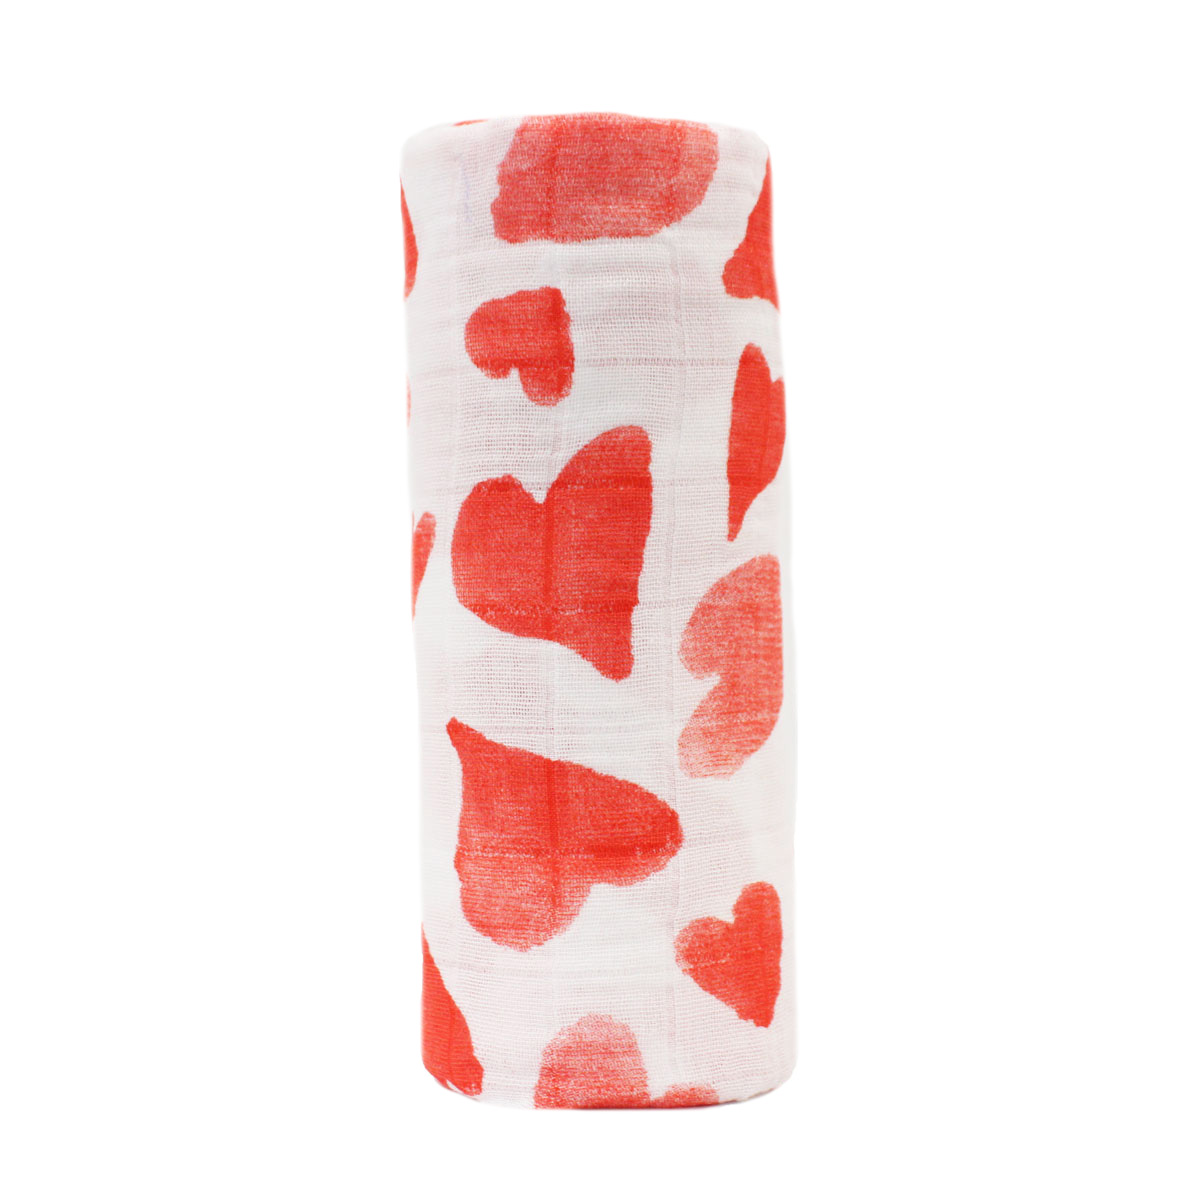 Hart & Land Organic Cotton Valentine's Swaddle in Red Hearts Print on White